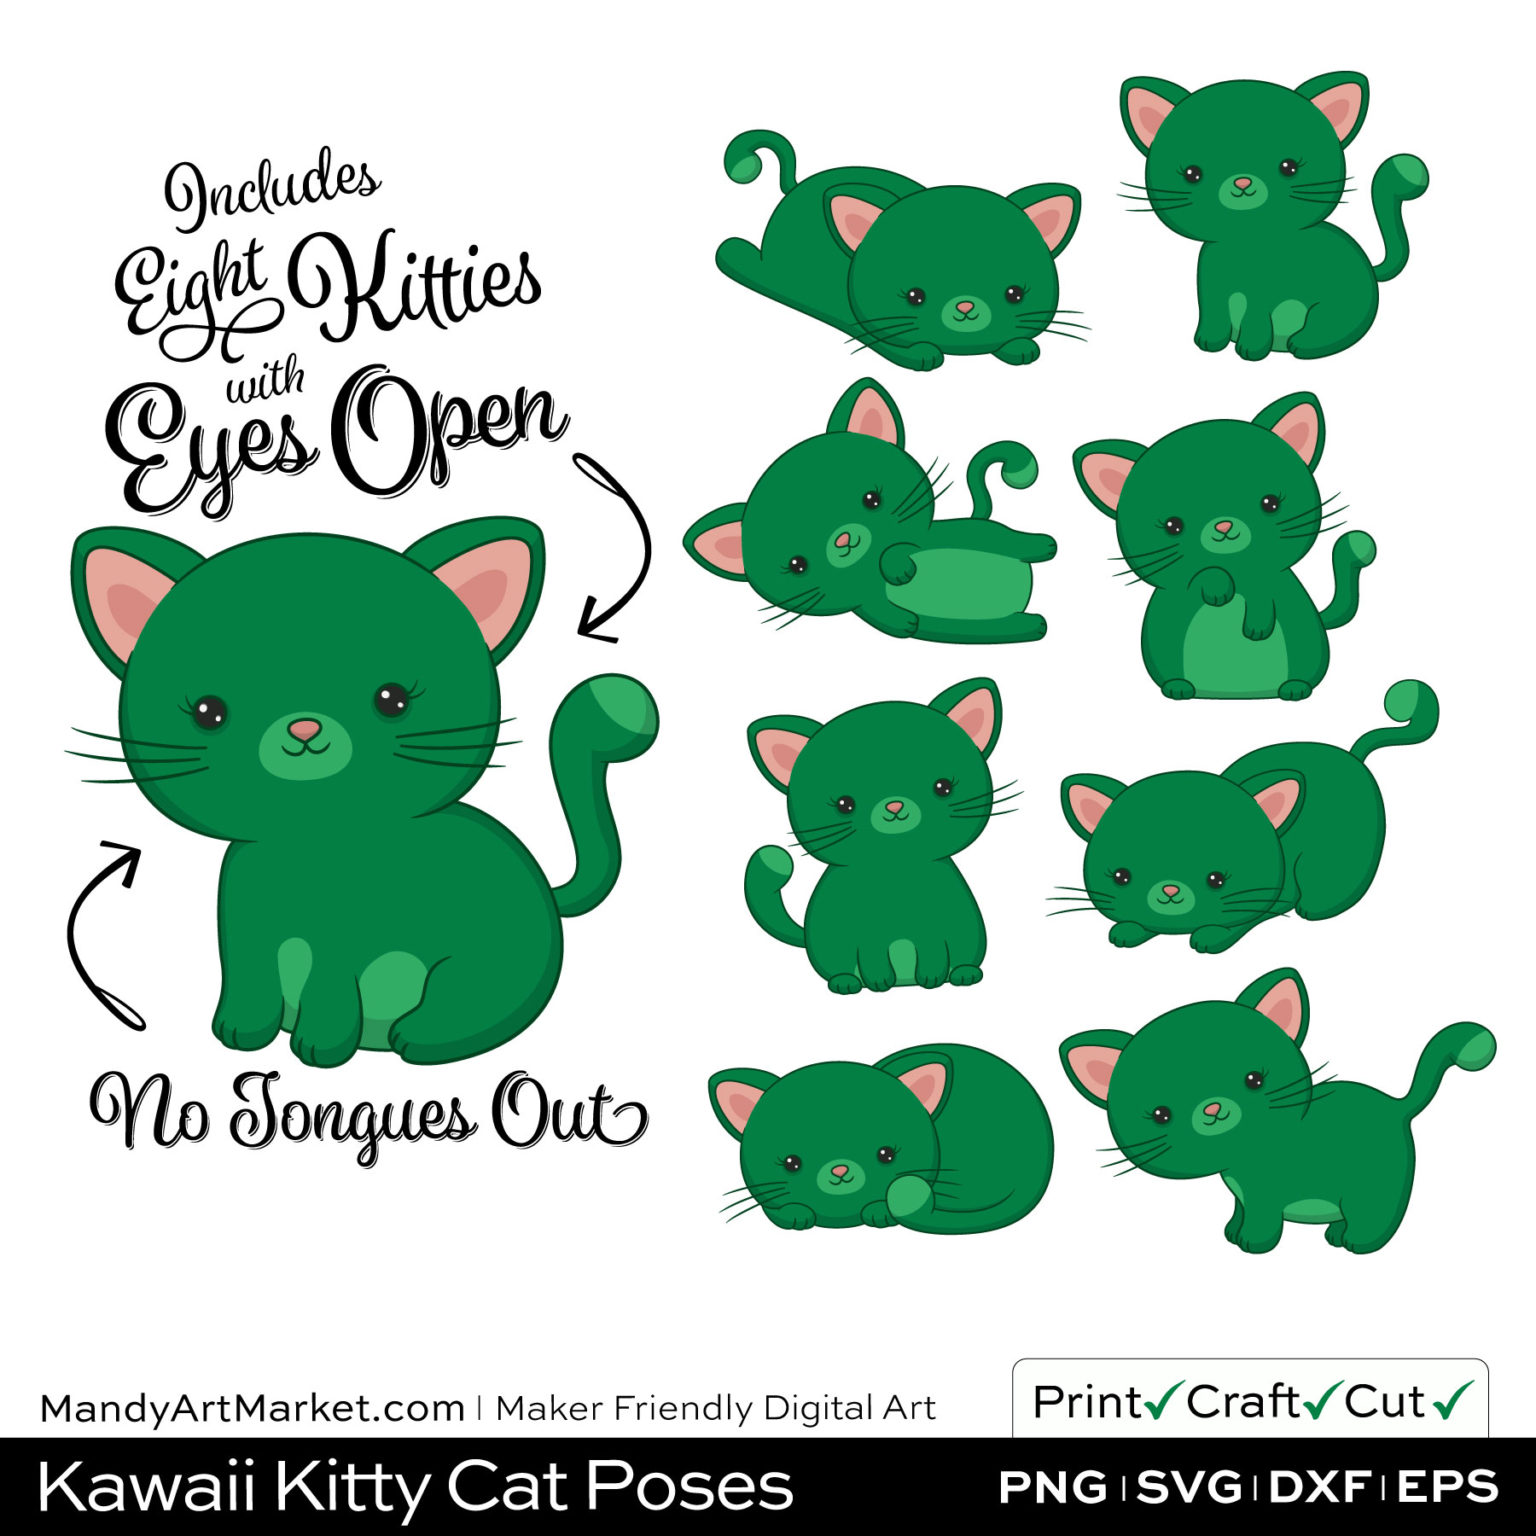 Emerald Green Kawaii Kitty Cat Poses Clipart on Wood Background